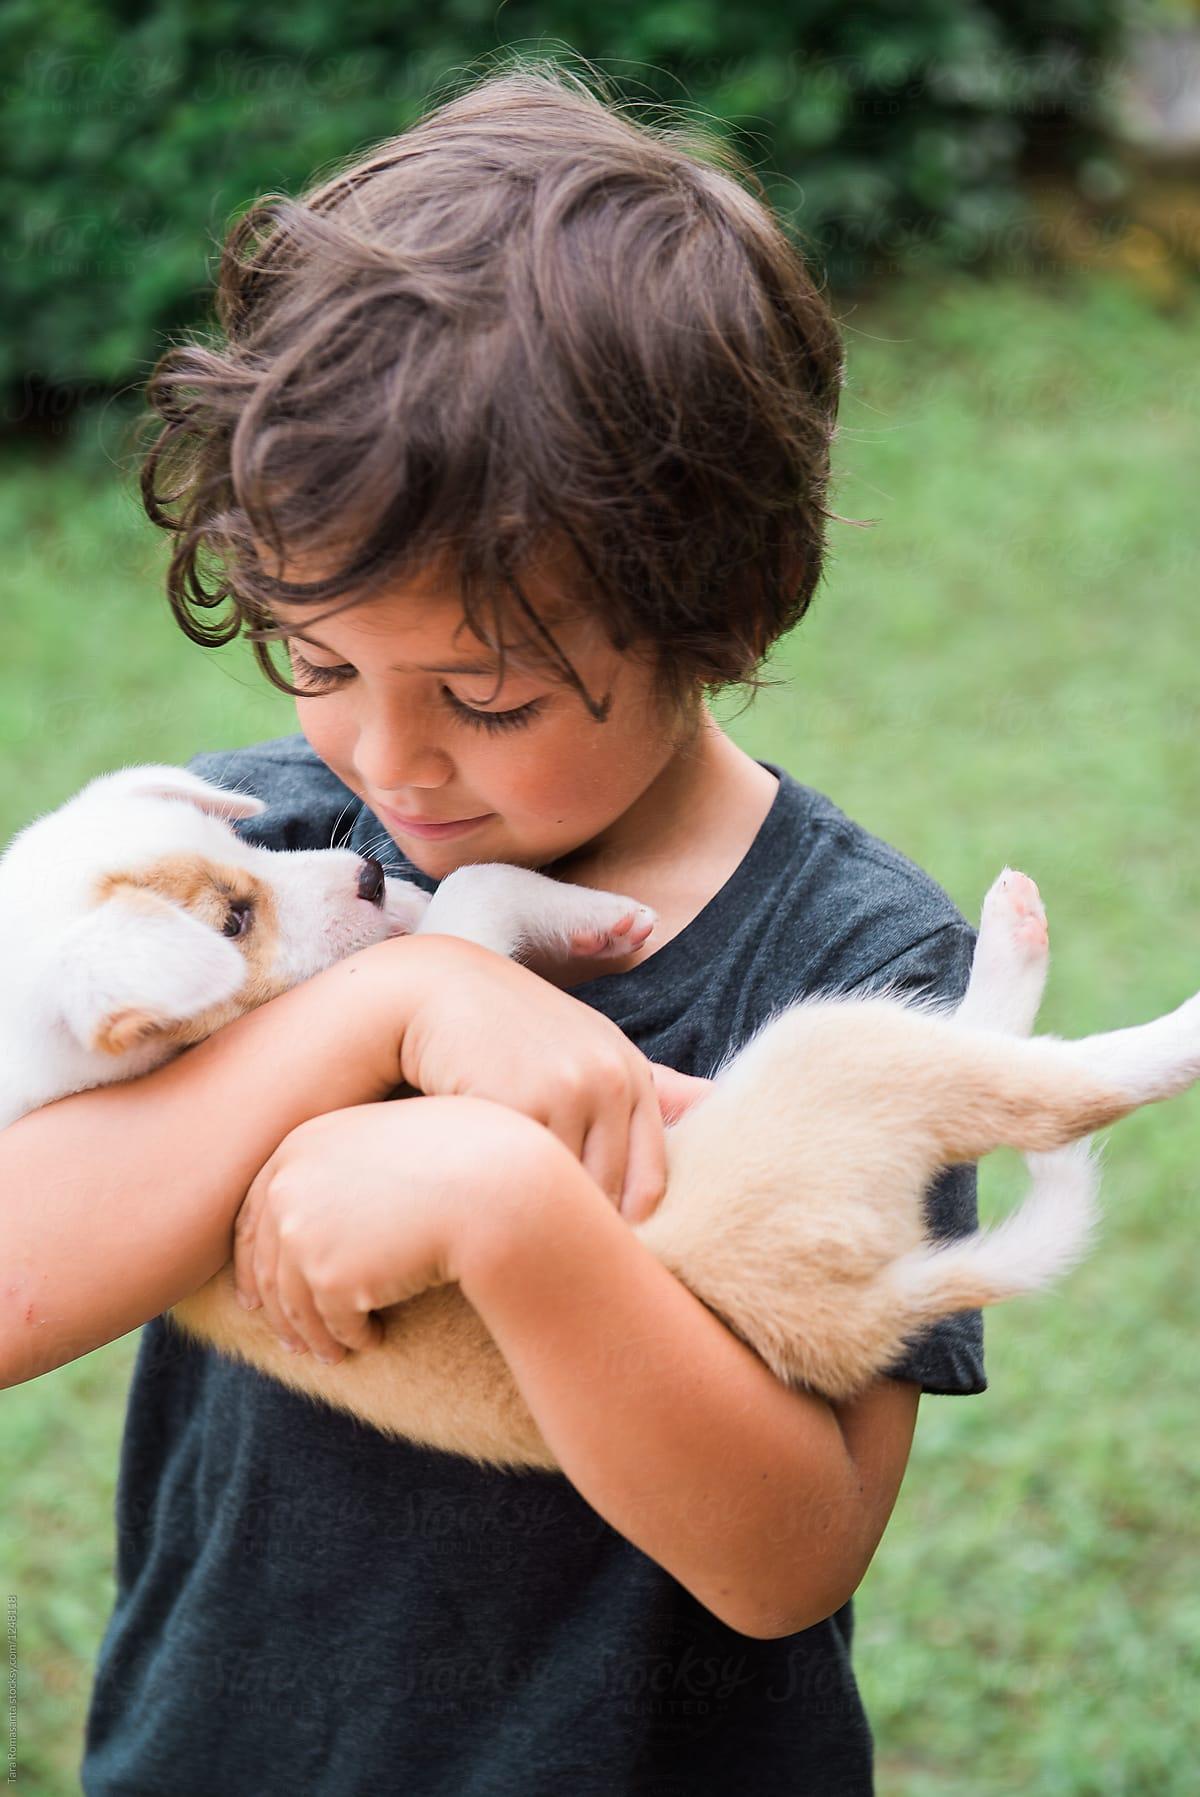 holding a puppy